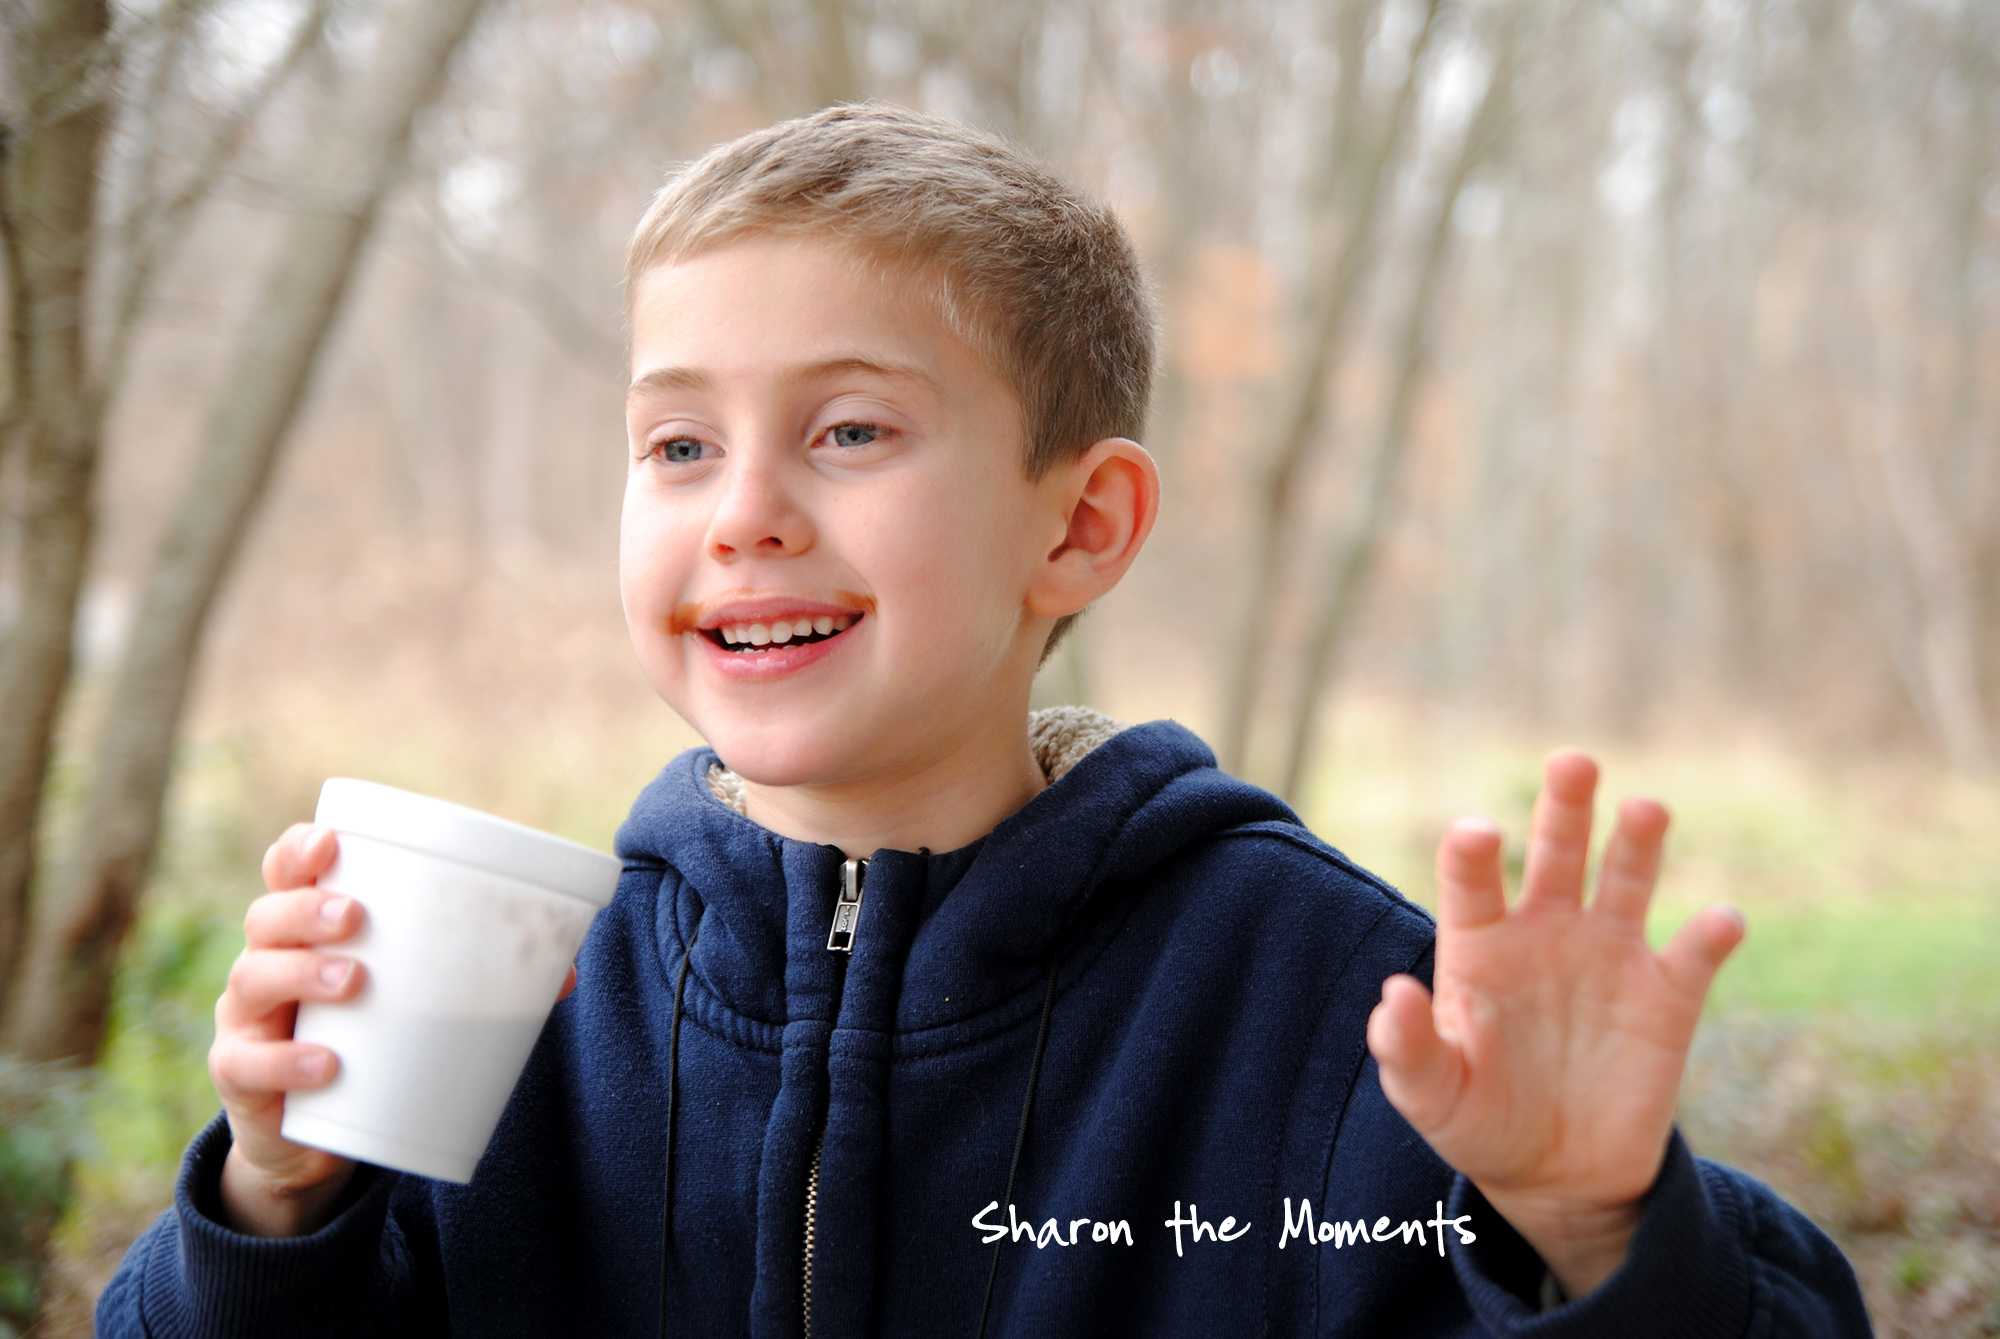 Laughing Smiling Kiddo|Sharon the Moments blog